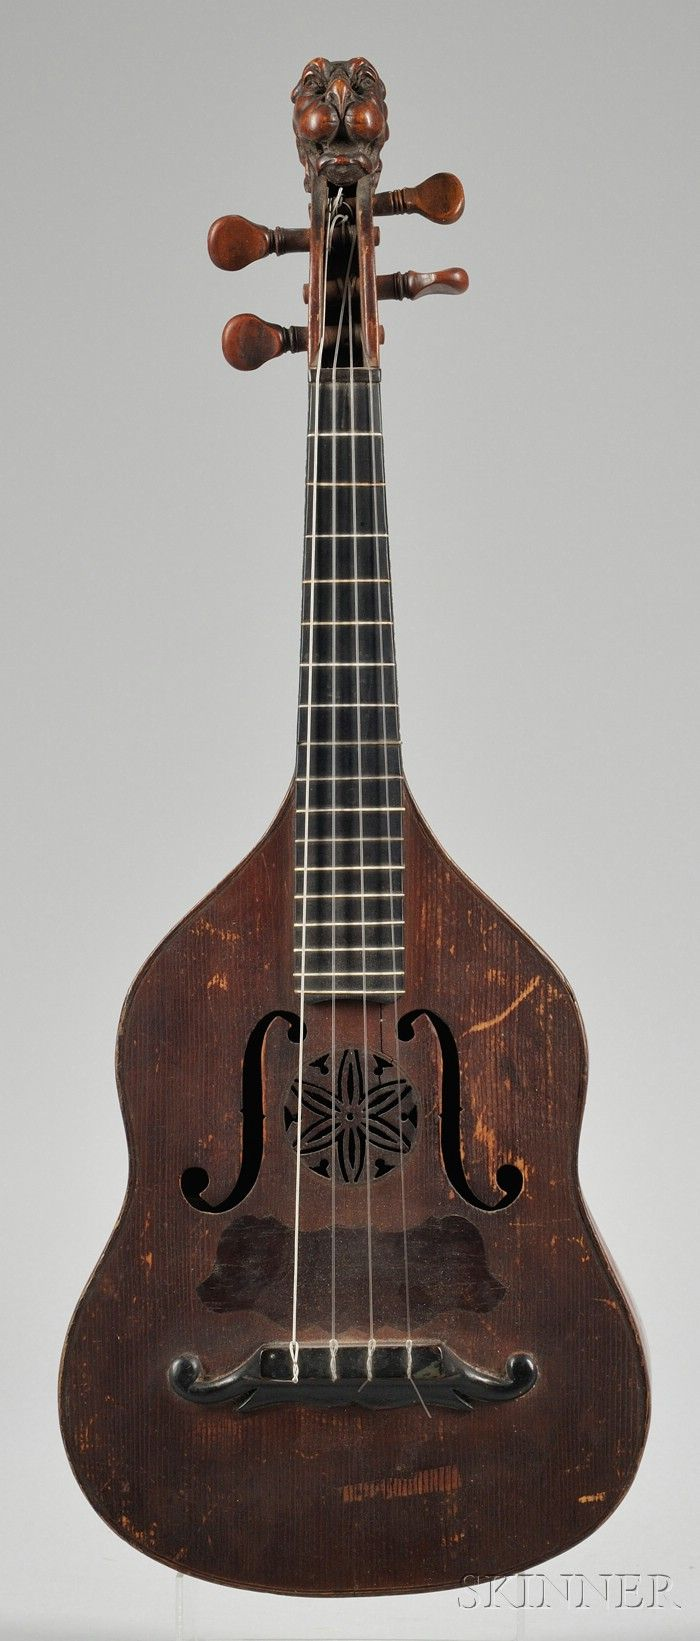 Brescian Mandolin, Gioffredo Rinaldi, Turin, 18   7, labeled